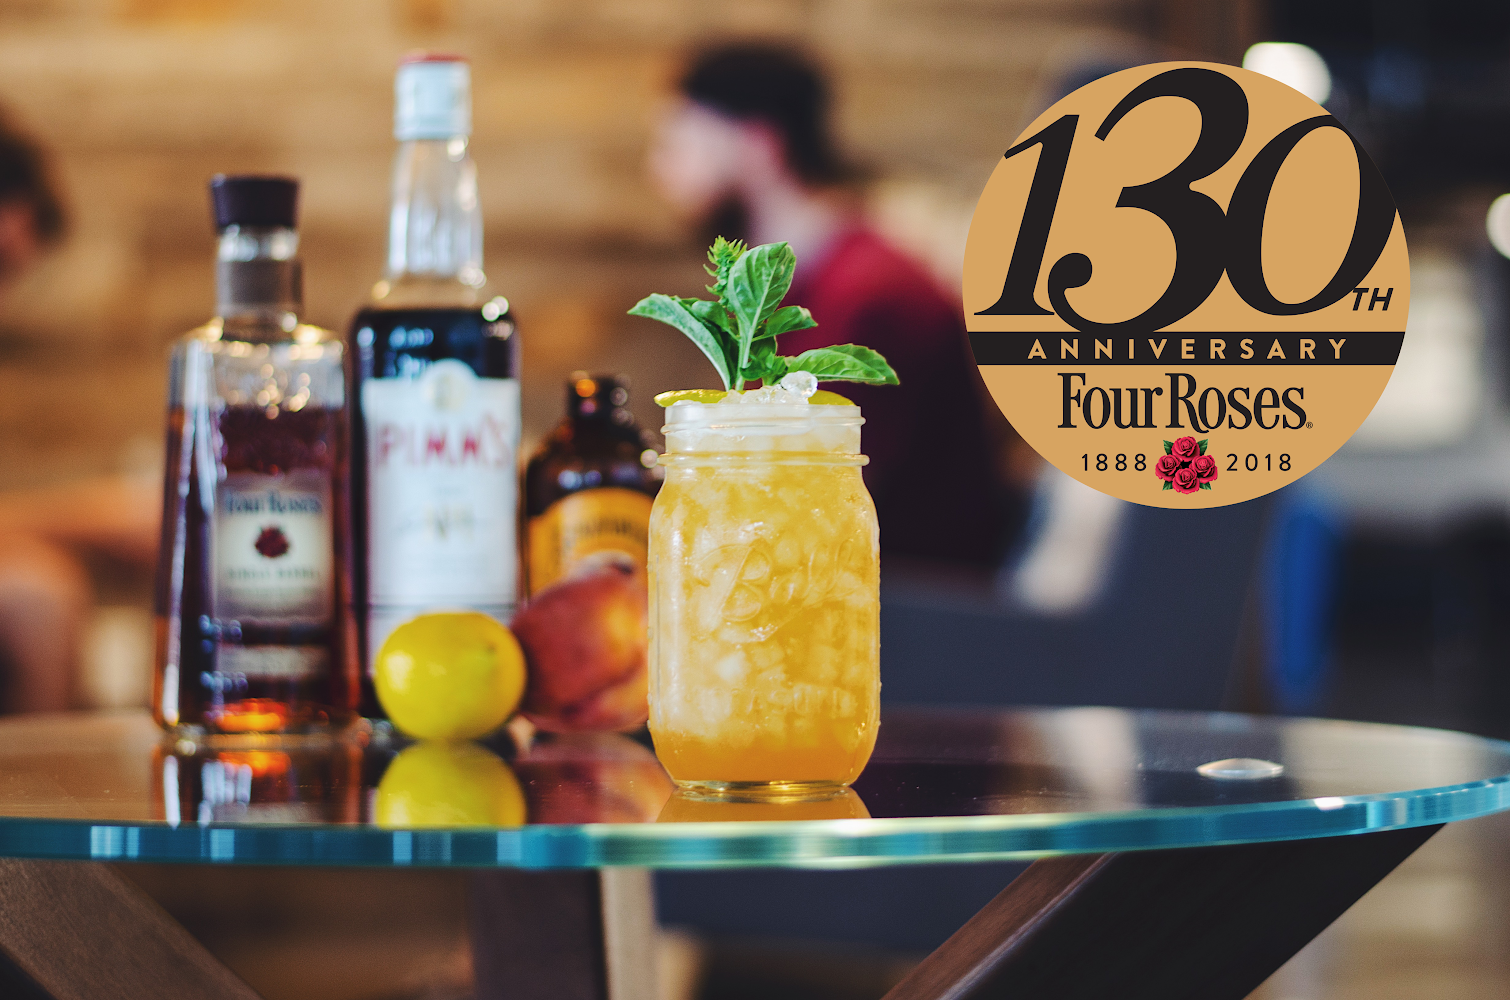 Will Mejia S Peach Rose Wins Four Roses 130th Anniversary Cocktail